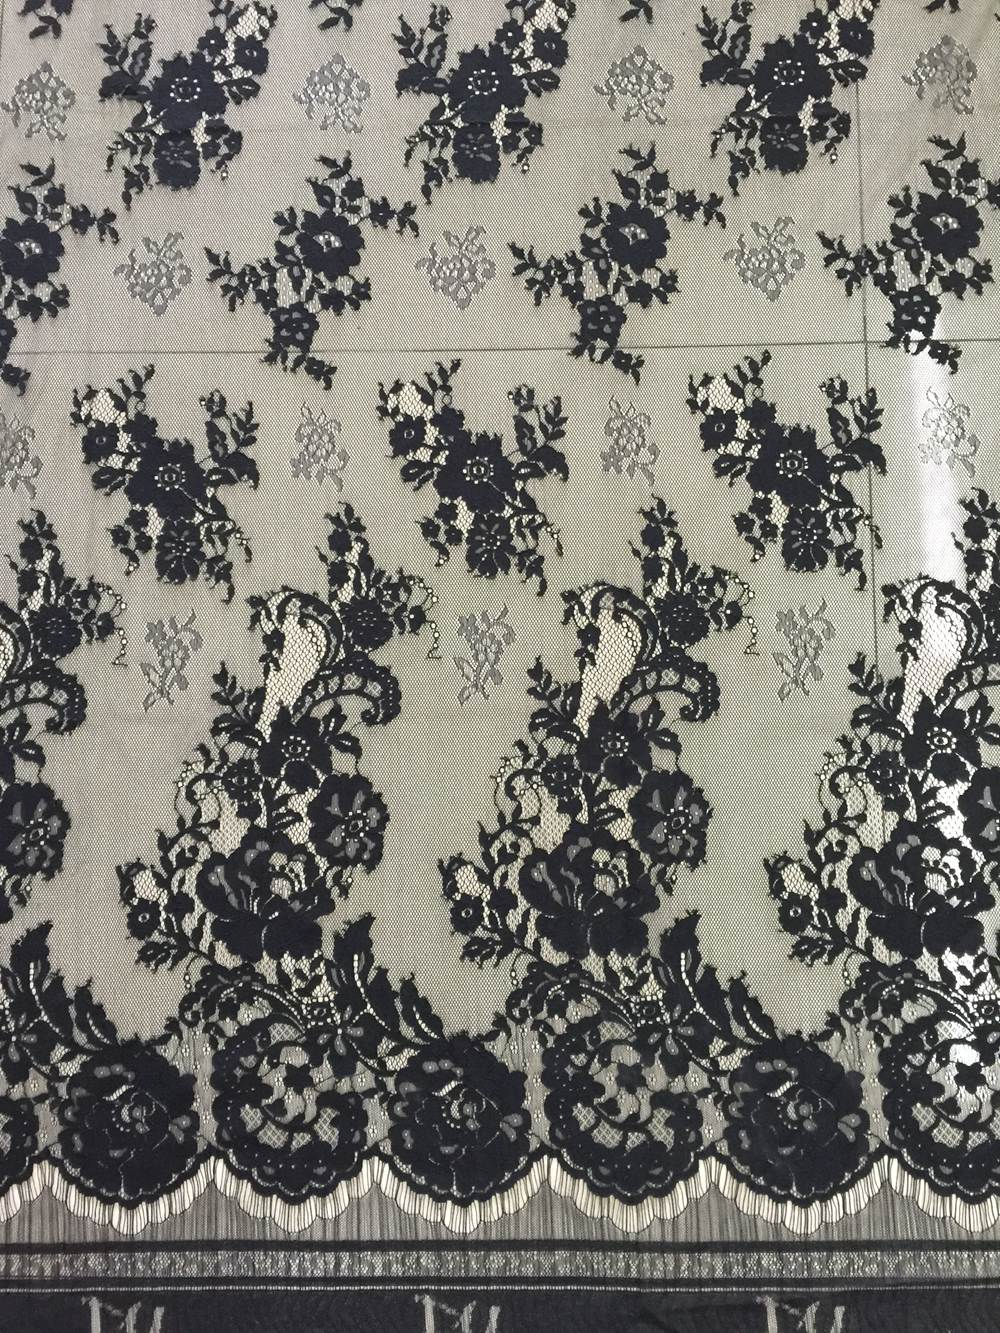 Hot sale China supplier nylon cotton French net lace fabric for dress